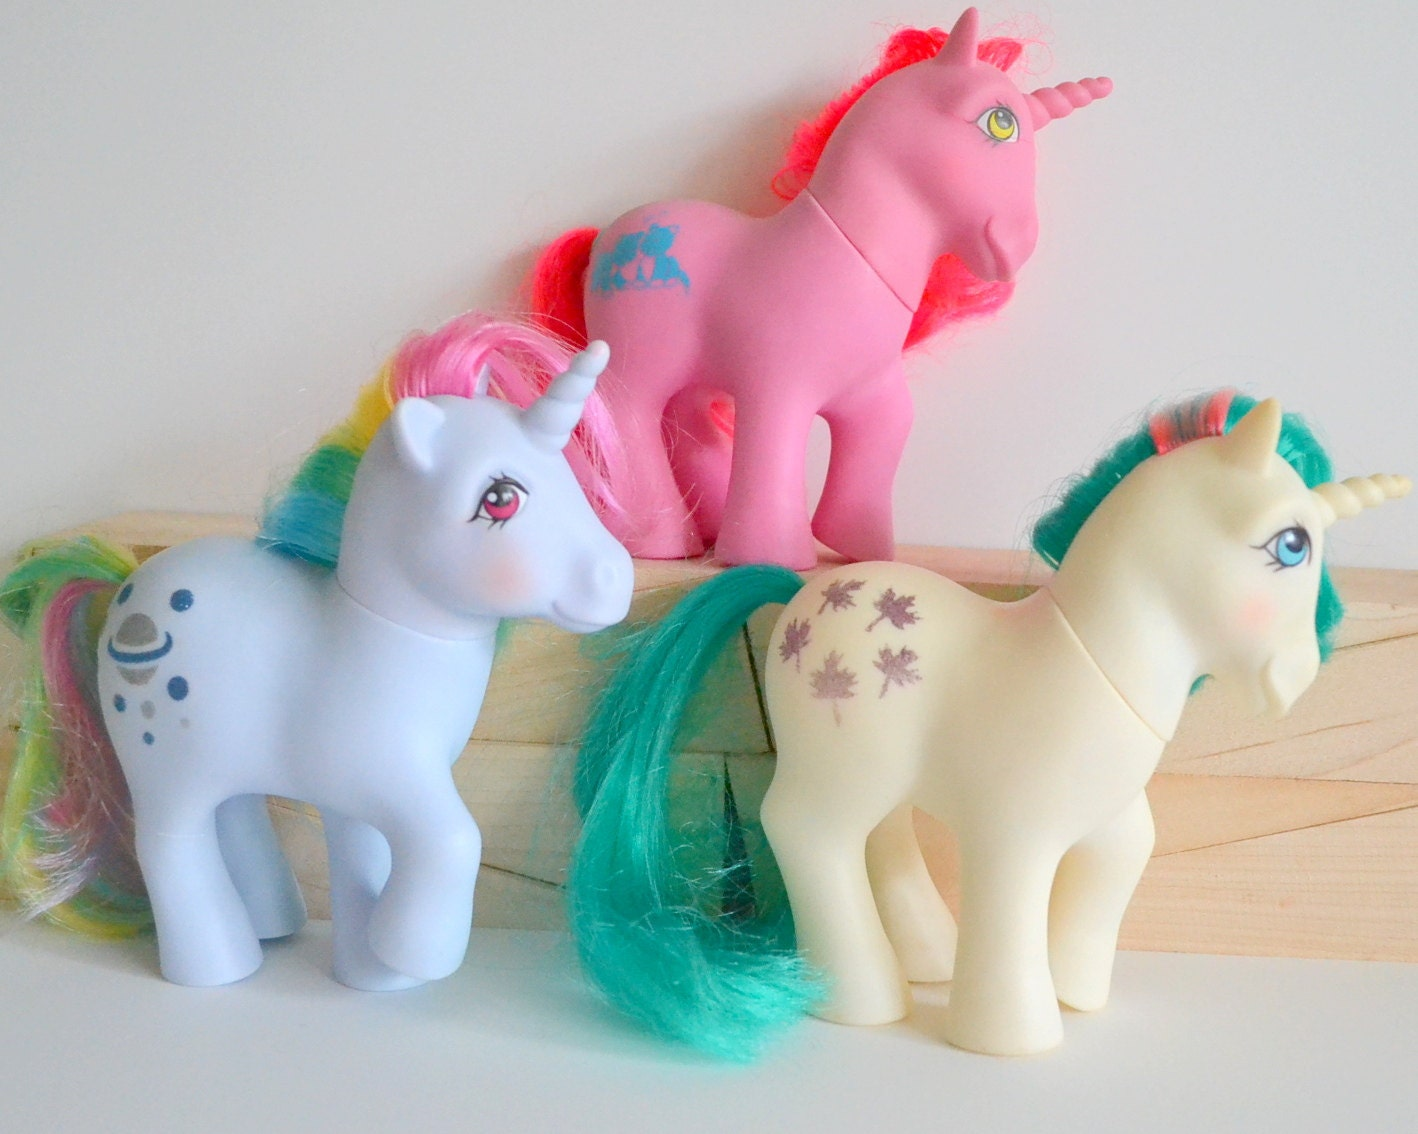 Ts Berry Furniture Vintage MLPs. My Little Pony Unicorn Happy Tails & Rainbow